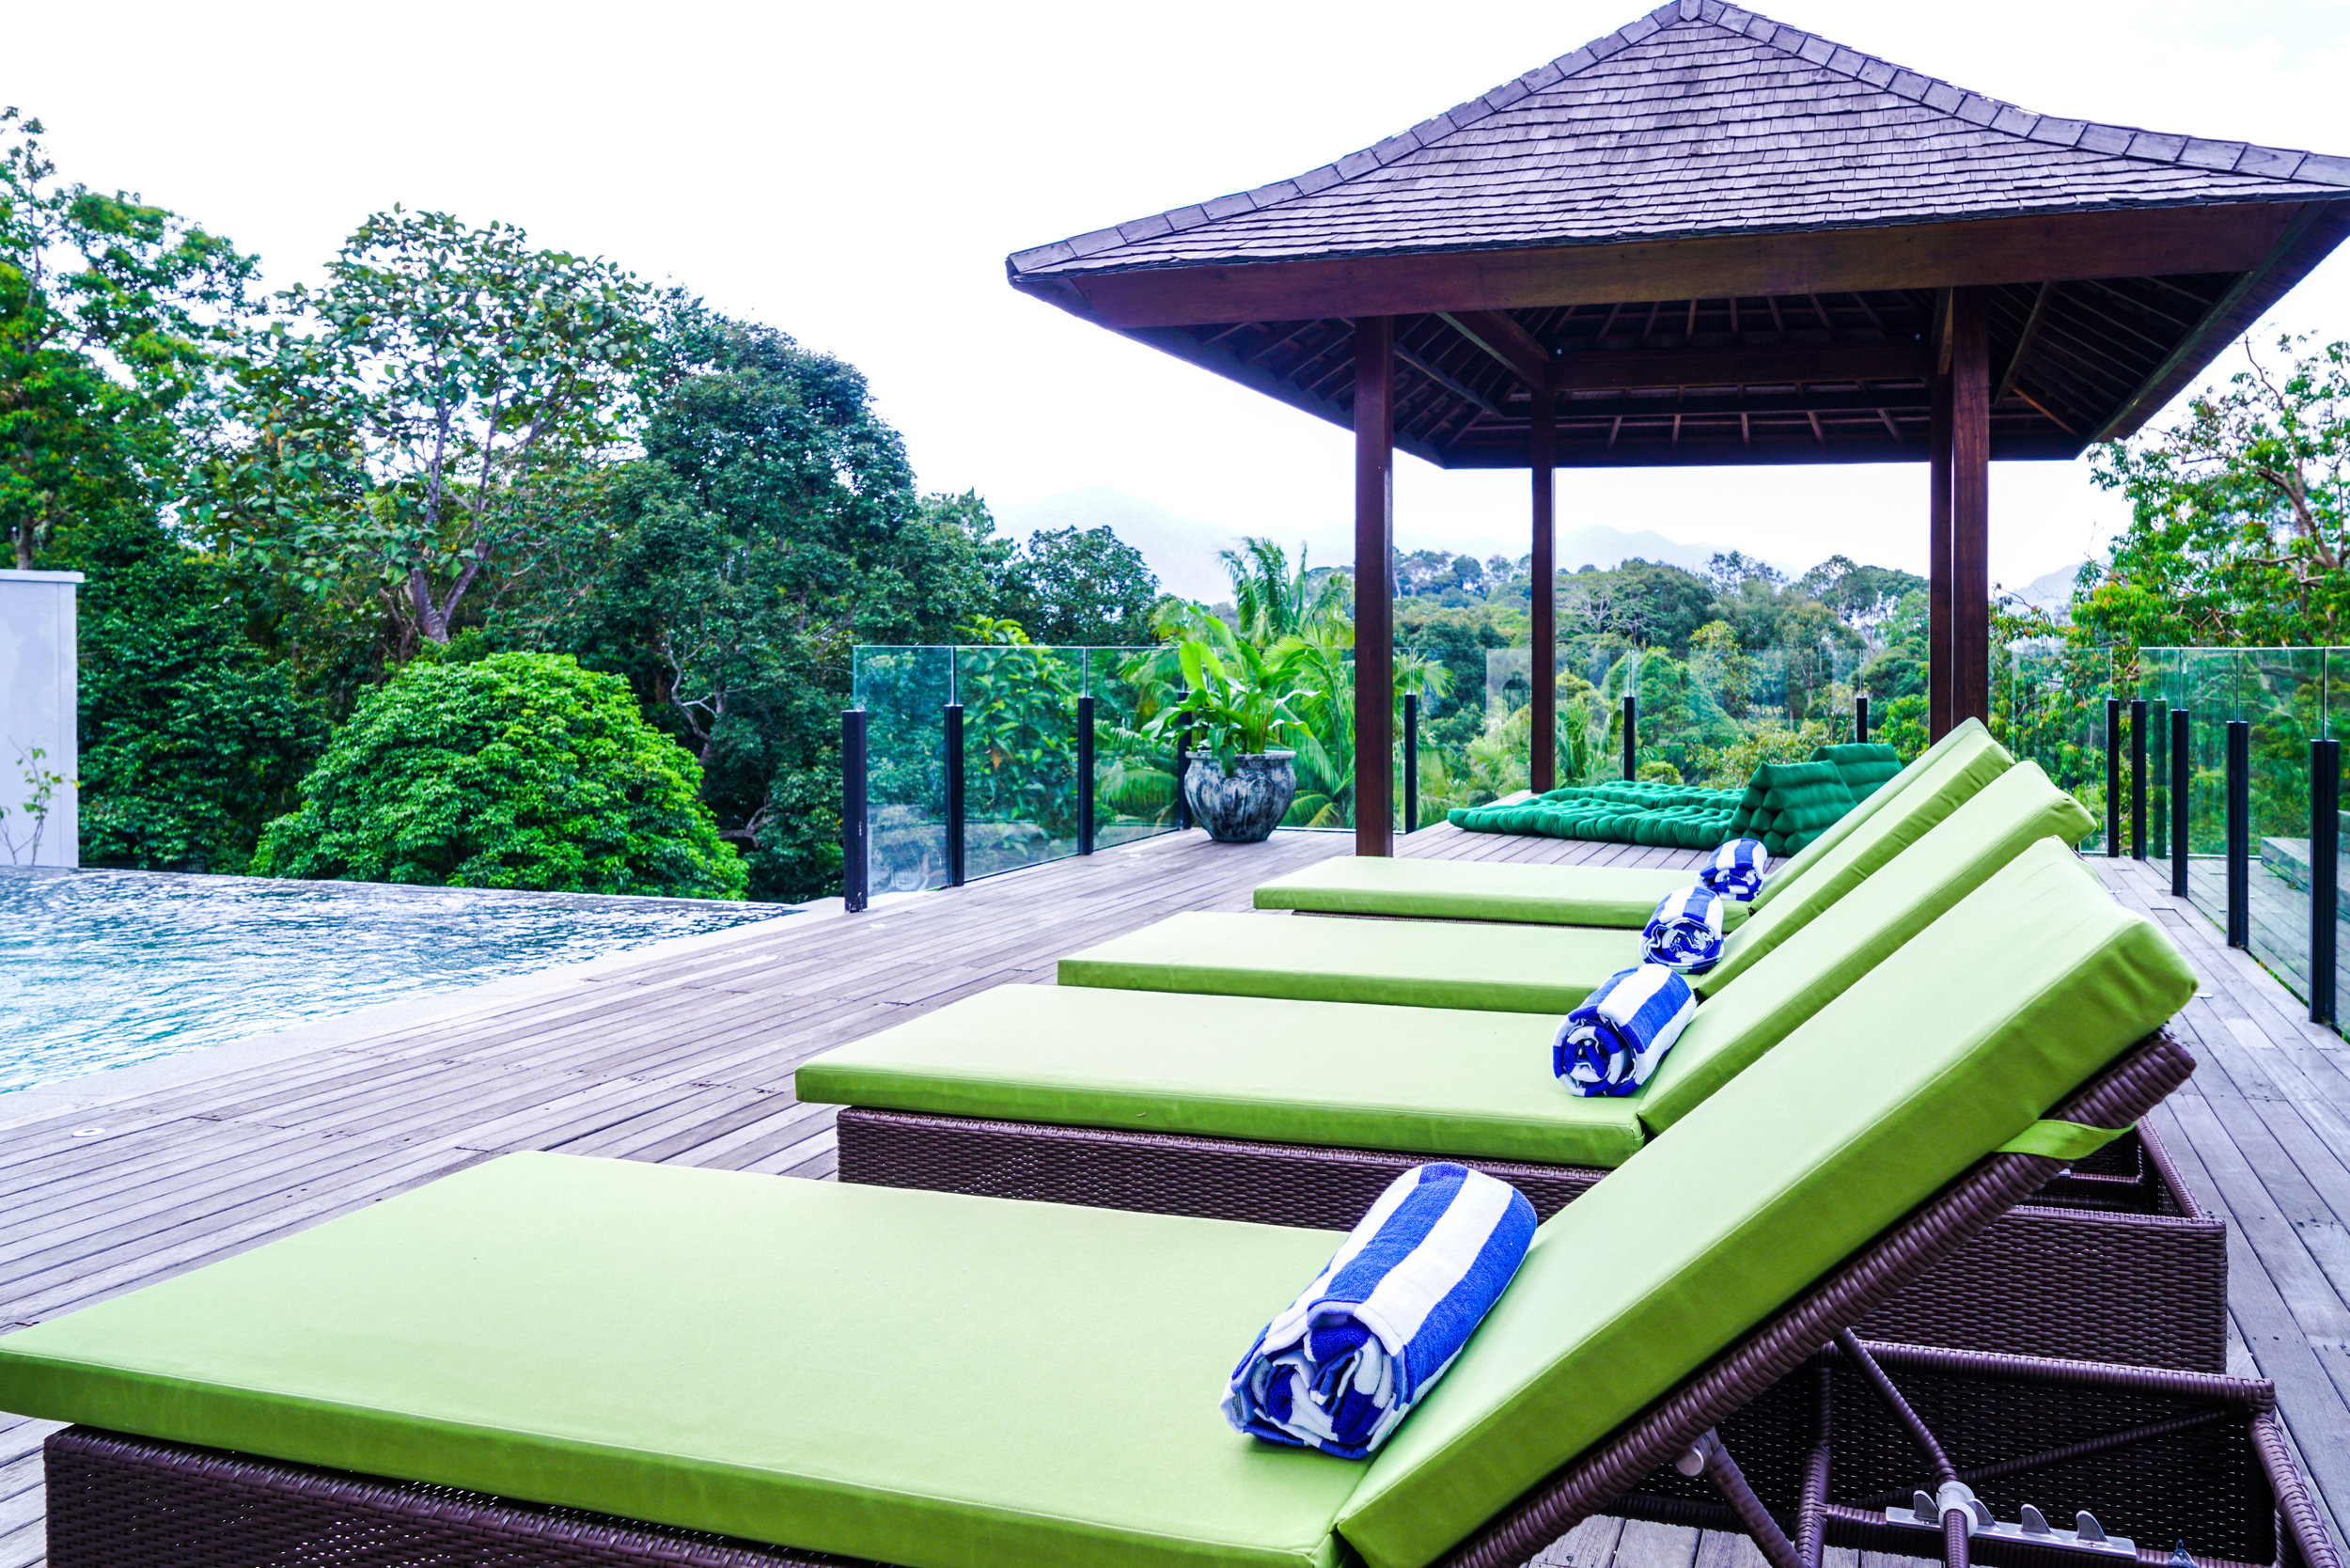 - Looking out from the inviting infinity pool or expansive deck, Villa Selasih has one of the most breathtaking views of the rain forest. On any given day, you might just catch sight of the wildlife who's homes are in the jungles of Janda Baik. Such is the view we even have a room we call 'The Inspiration Room'.